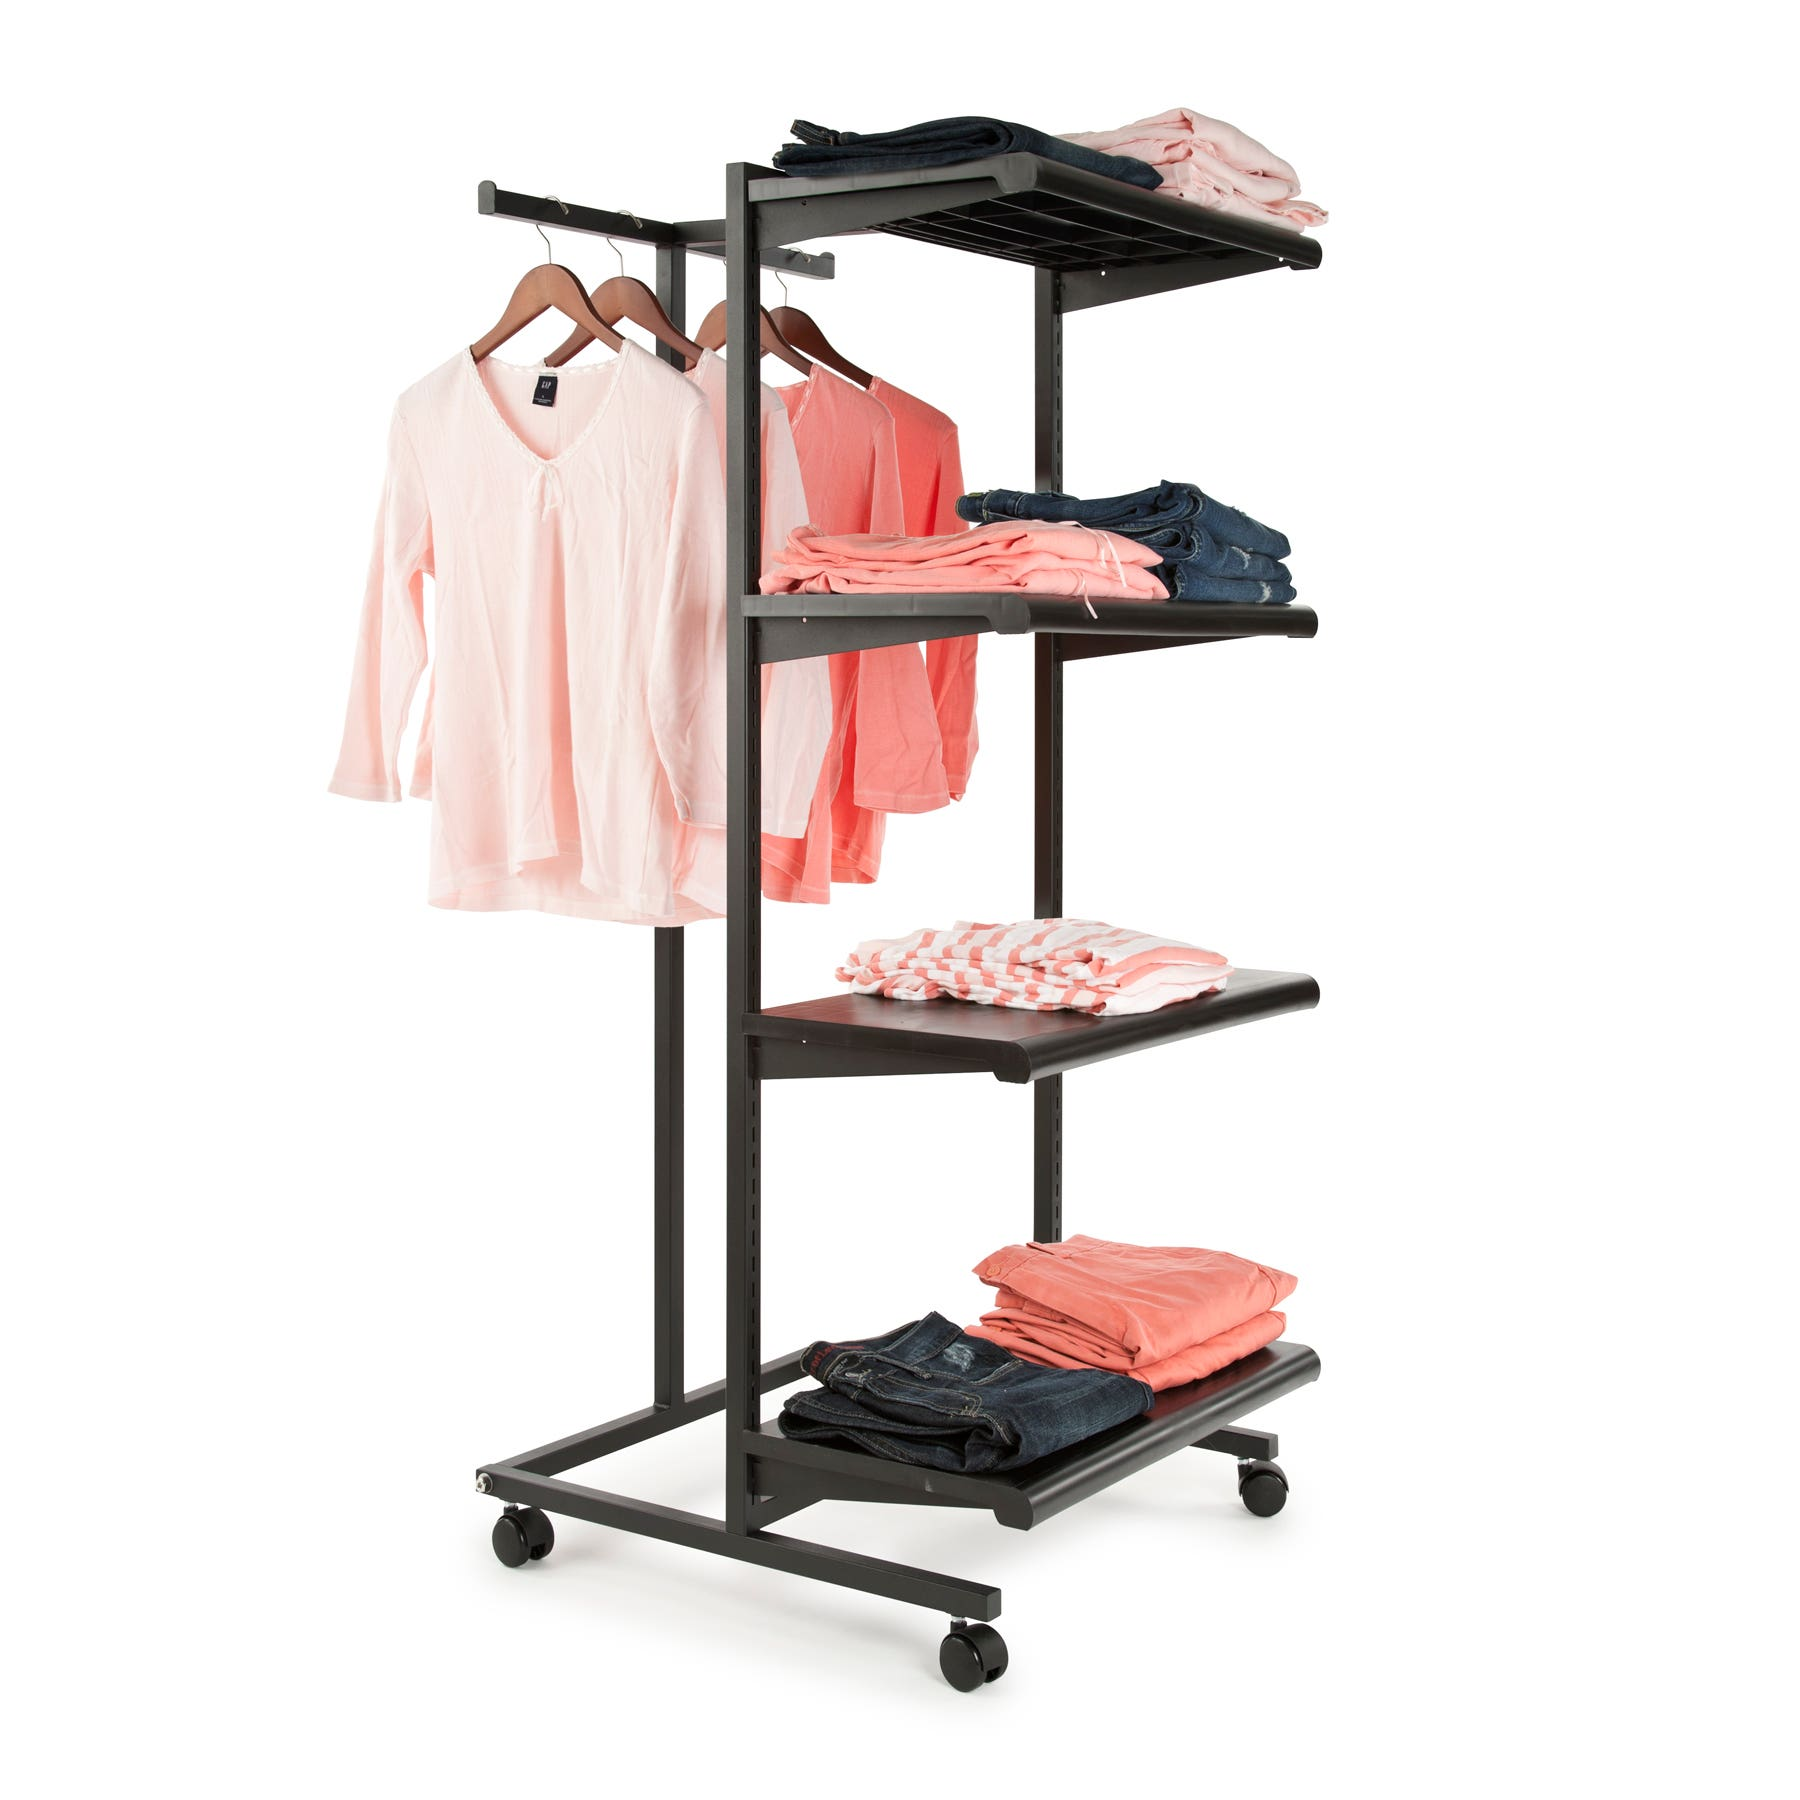 Wholesale clothing racks retail clothing racks for Furniture and fixtures